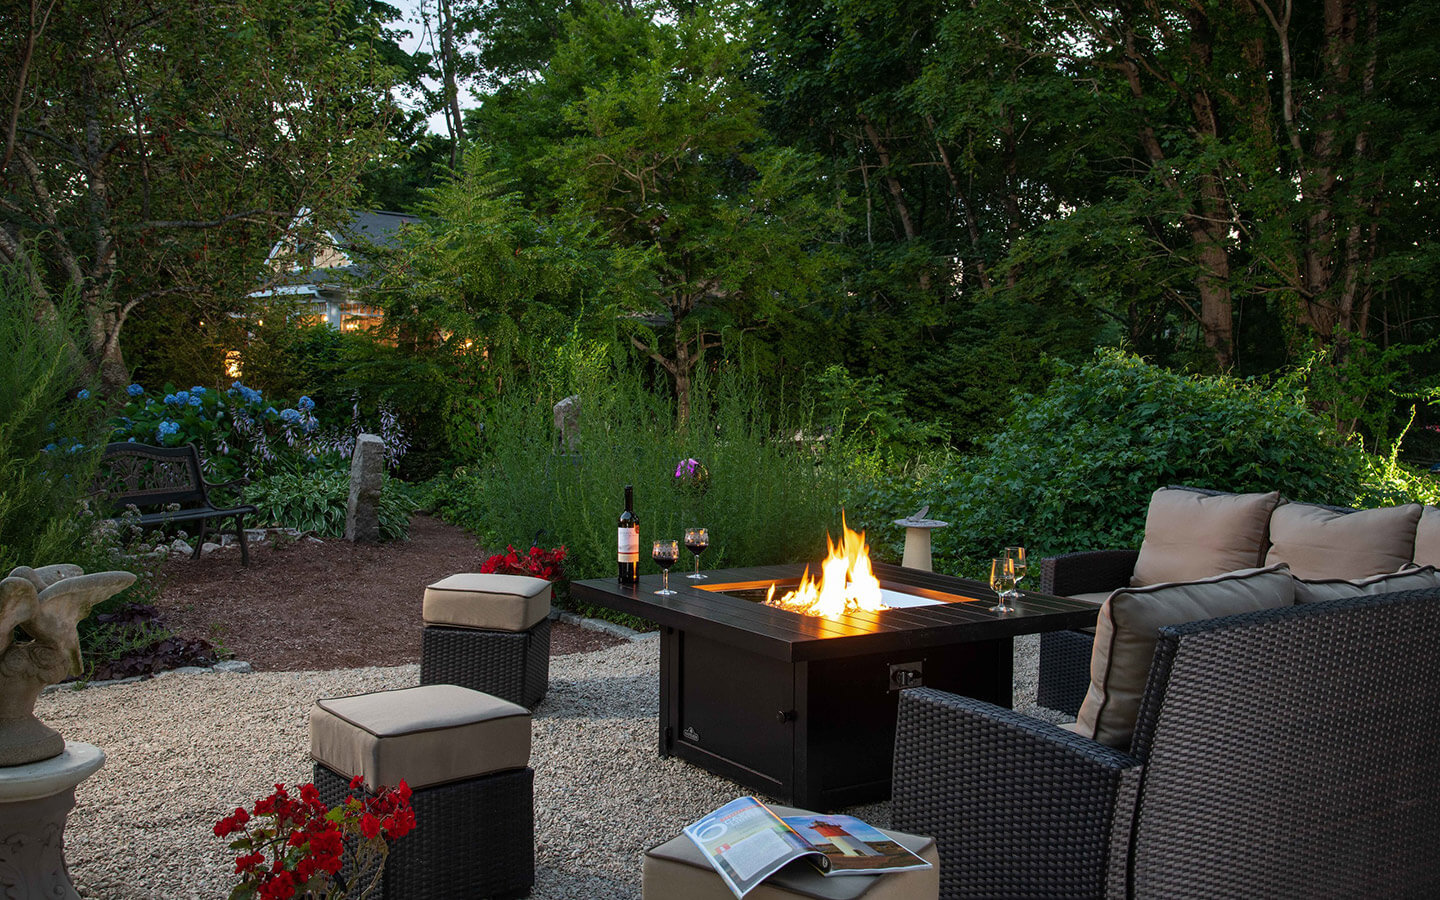 Outdoor seating around the firepit